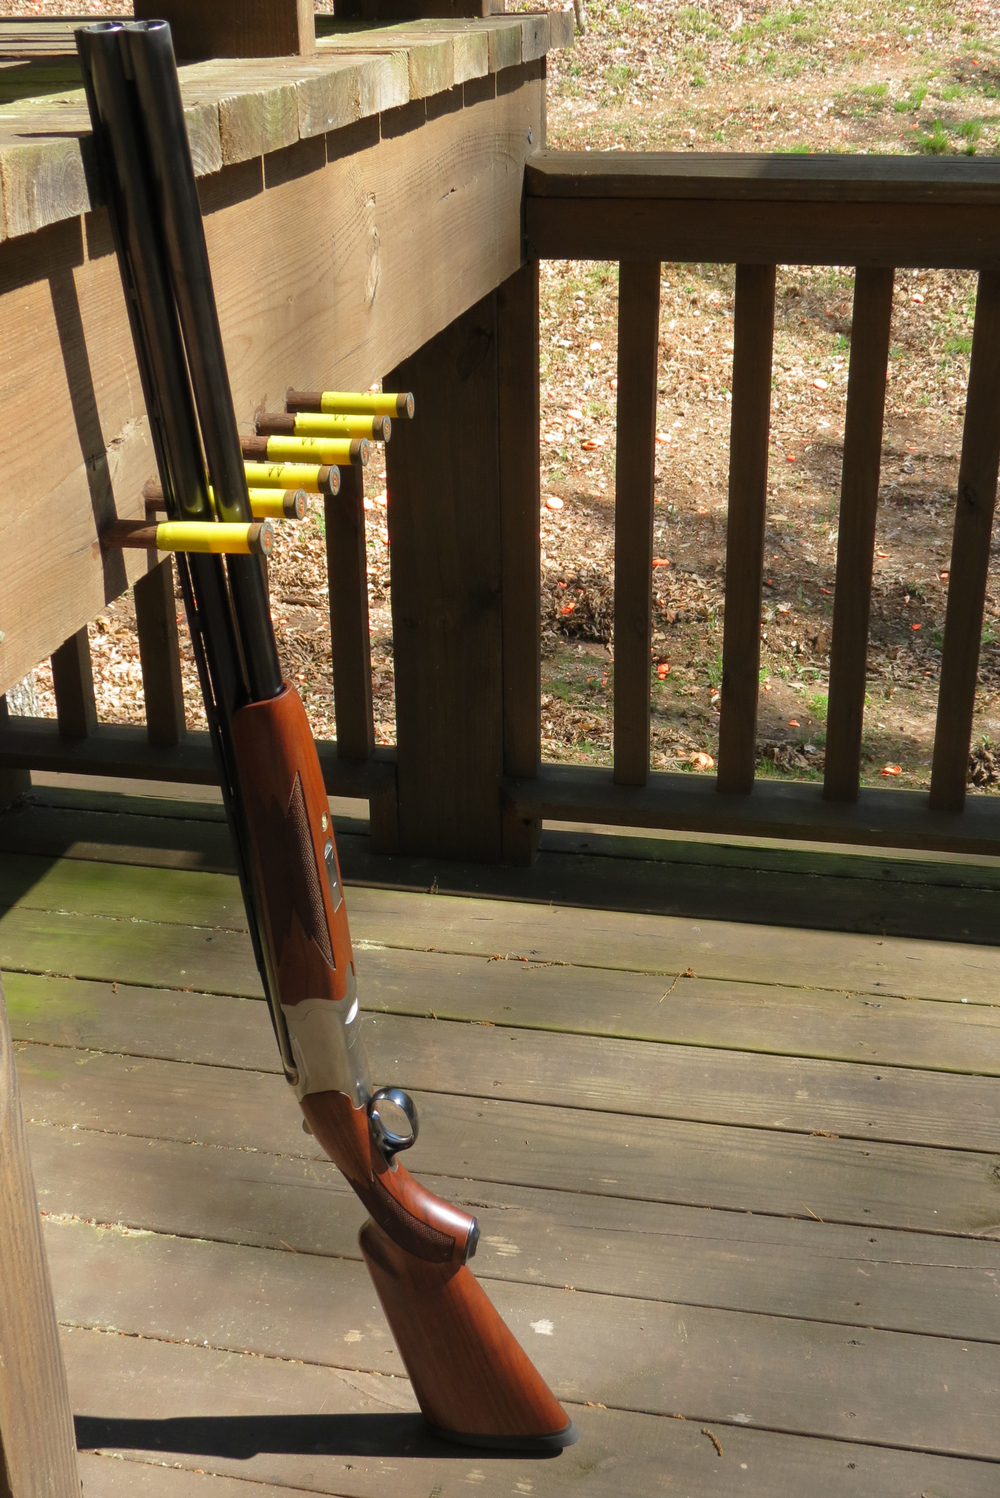 The 12-gauge Ruger Red Label at a sporting clays station at the Foxhall Resort and Sporting Club.